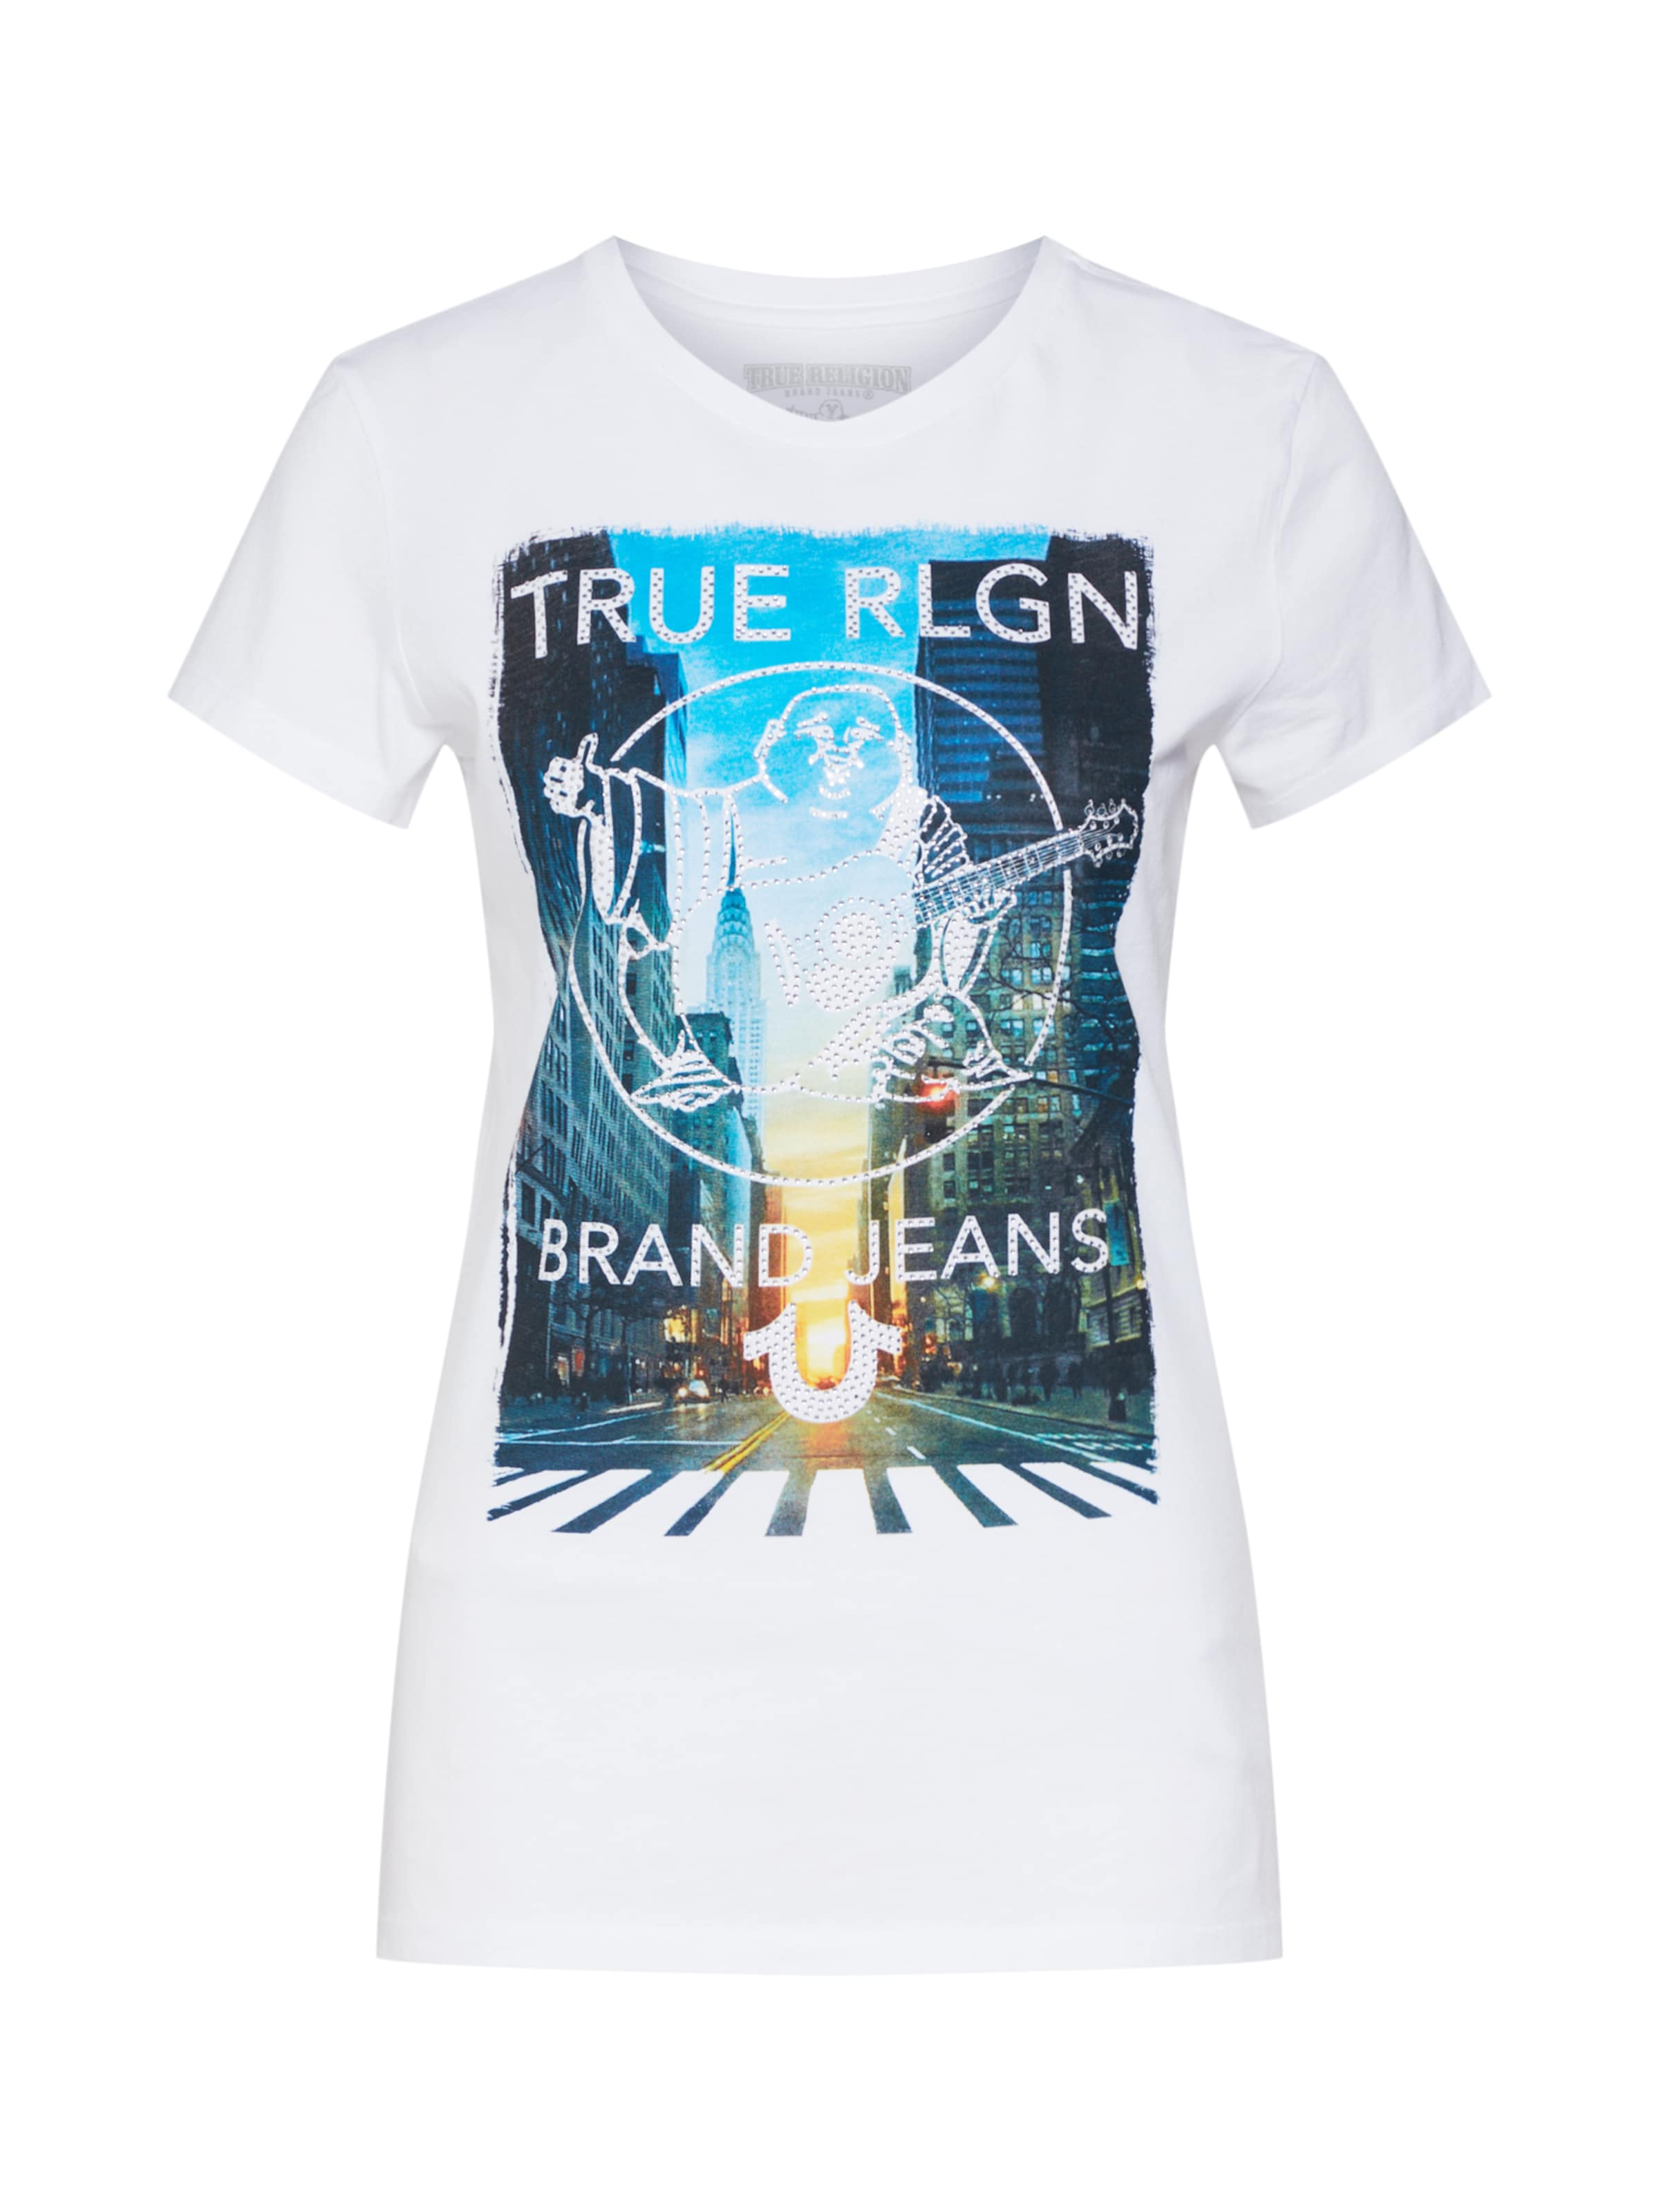 'crew City True Scape' Blanc T Religion shirt En PZiwuTOkX